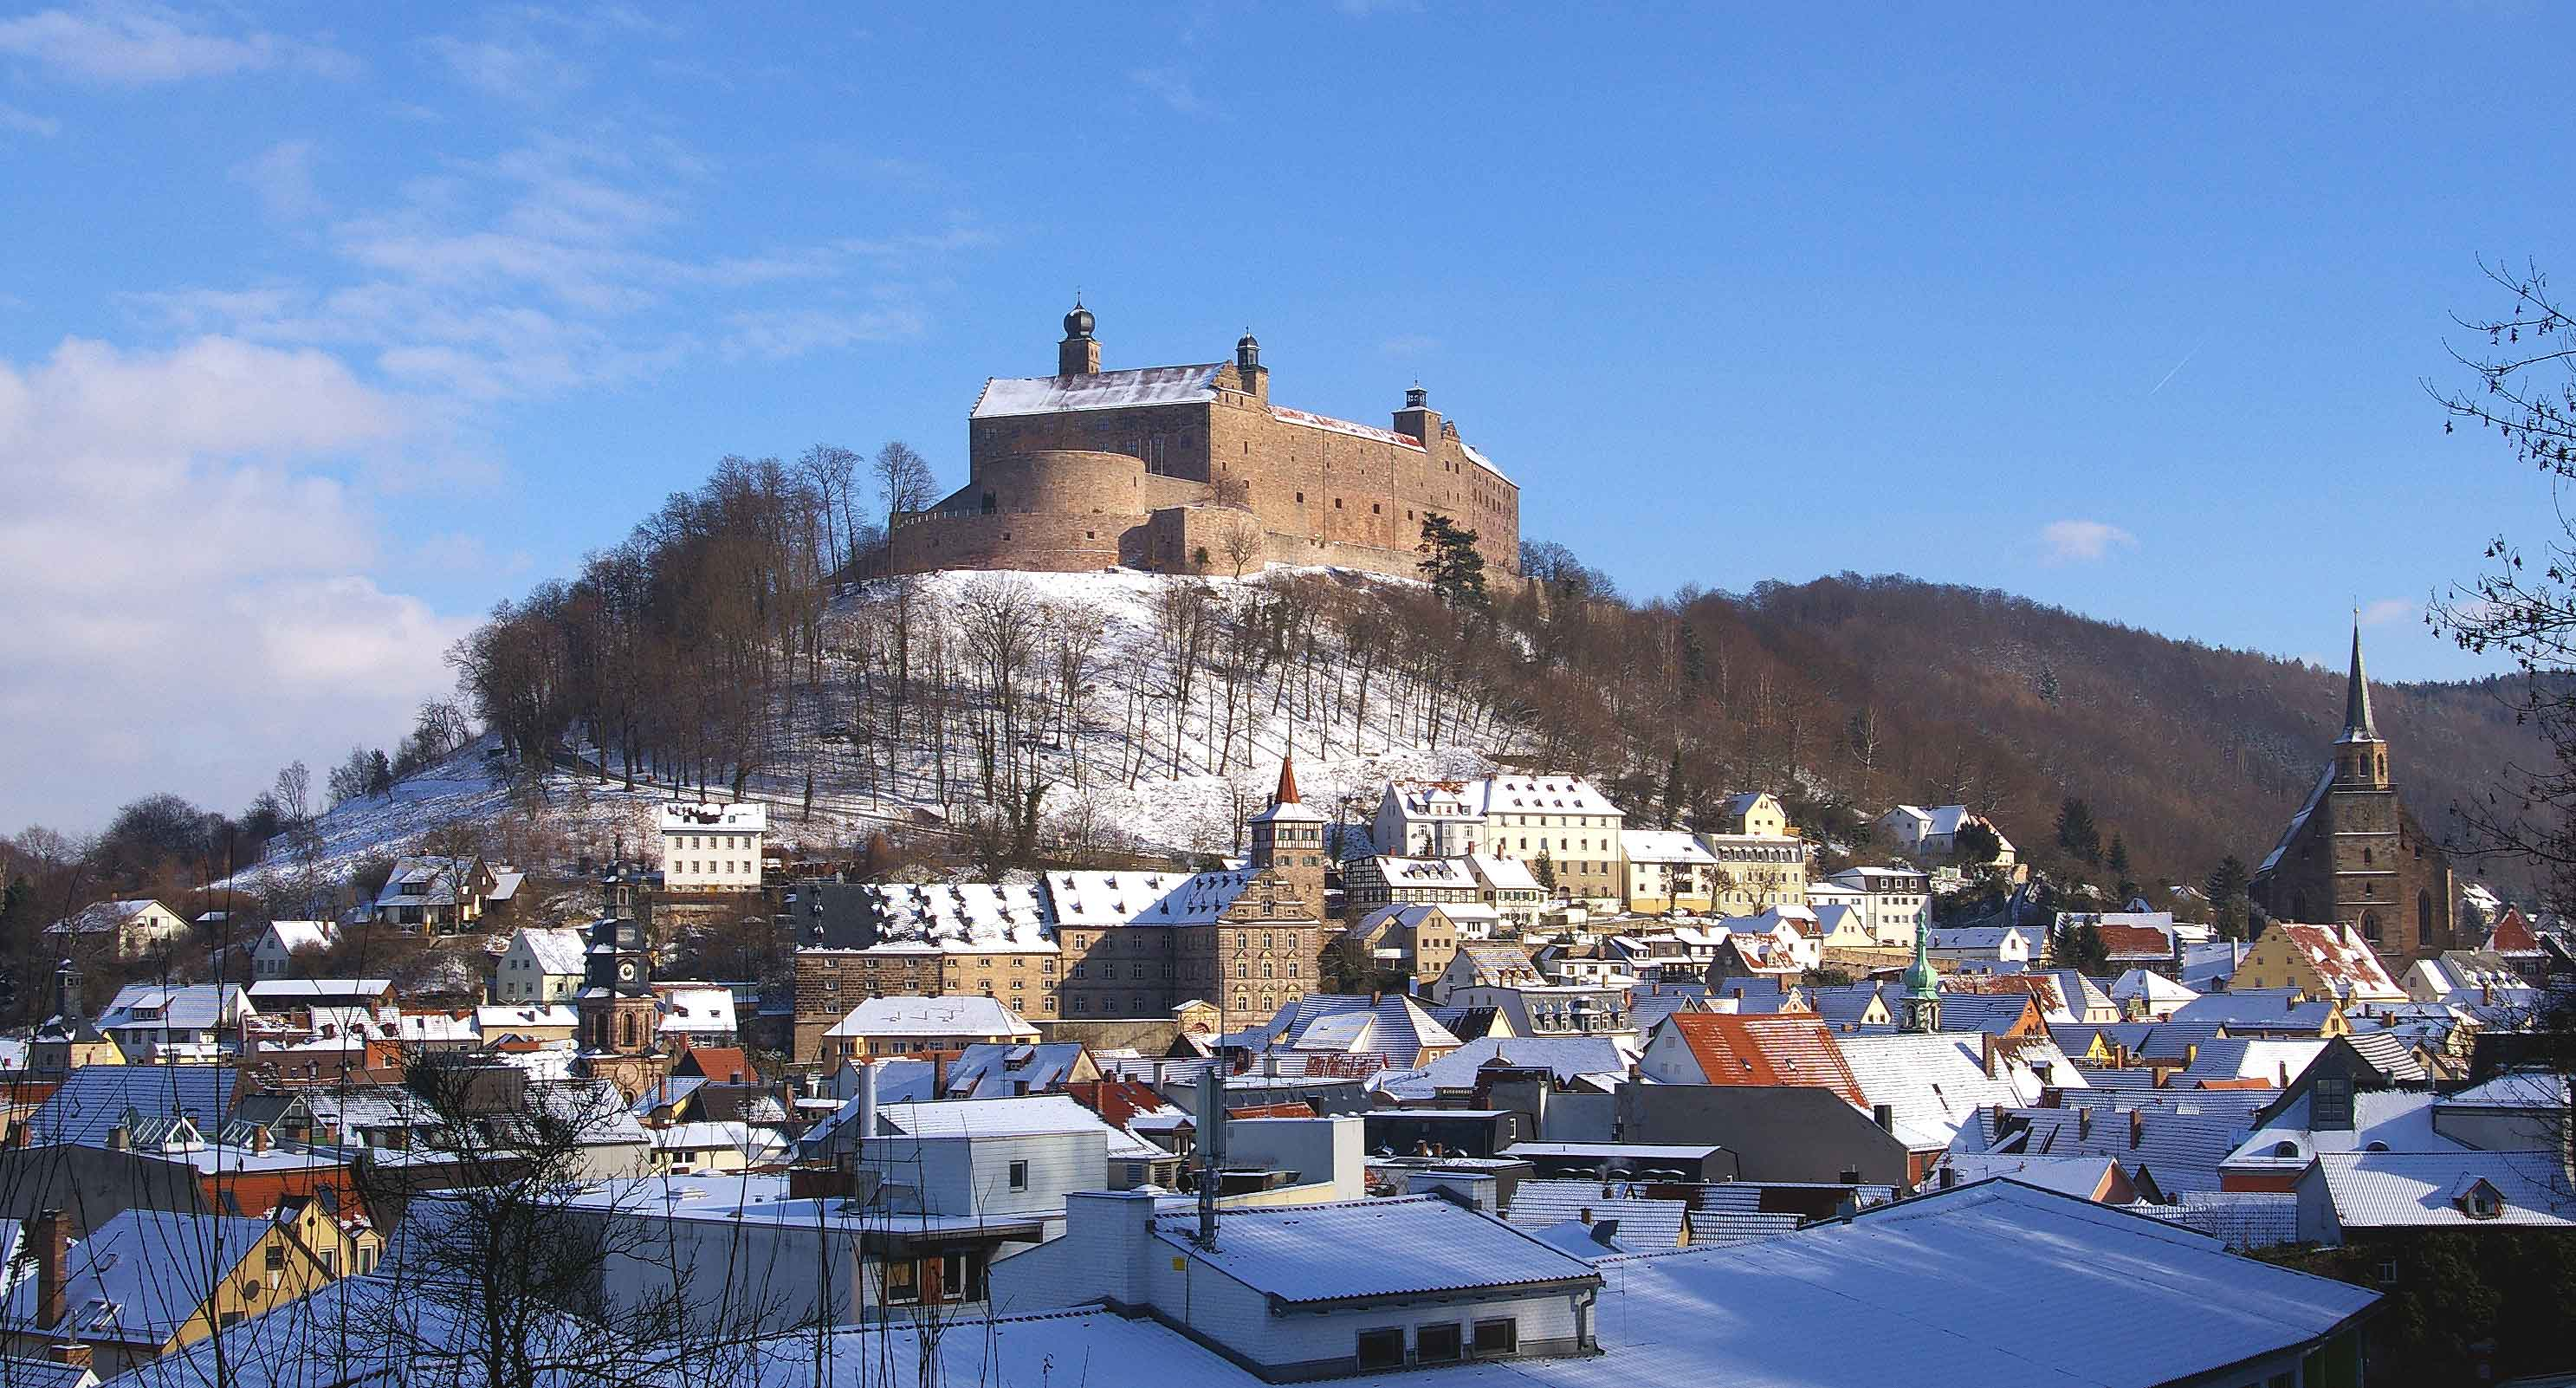 Kulmbach_Winter2007-2.jpg